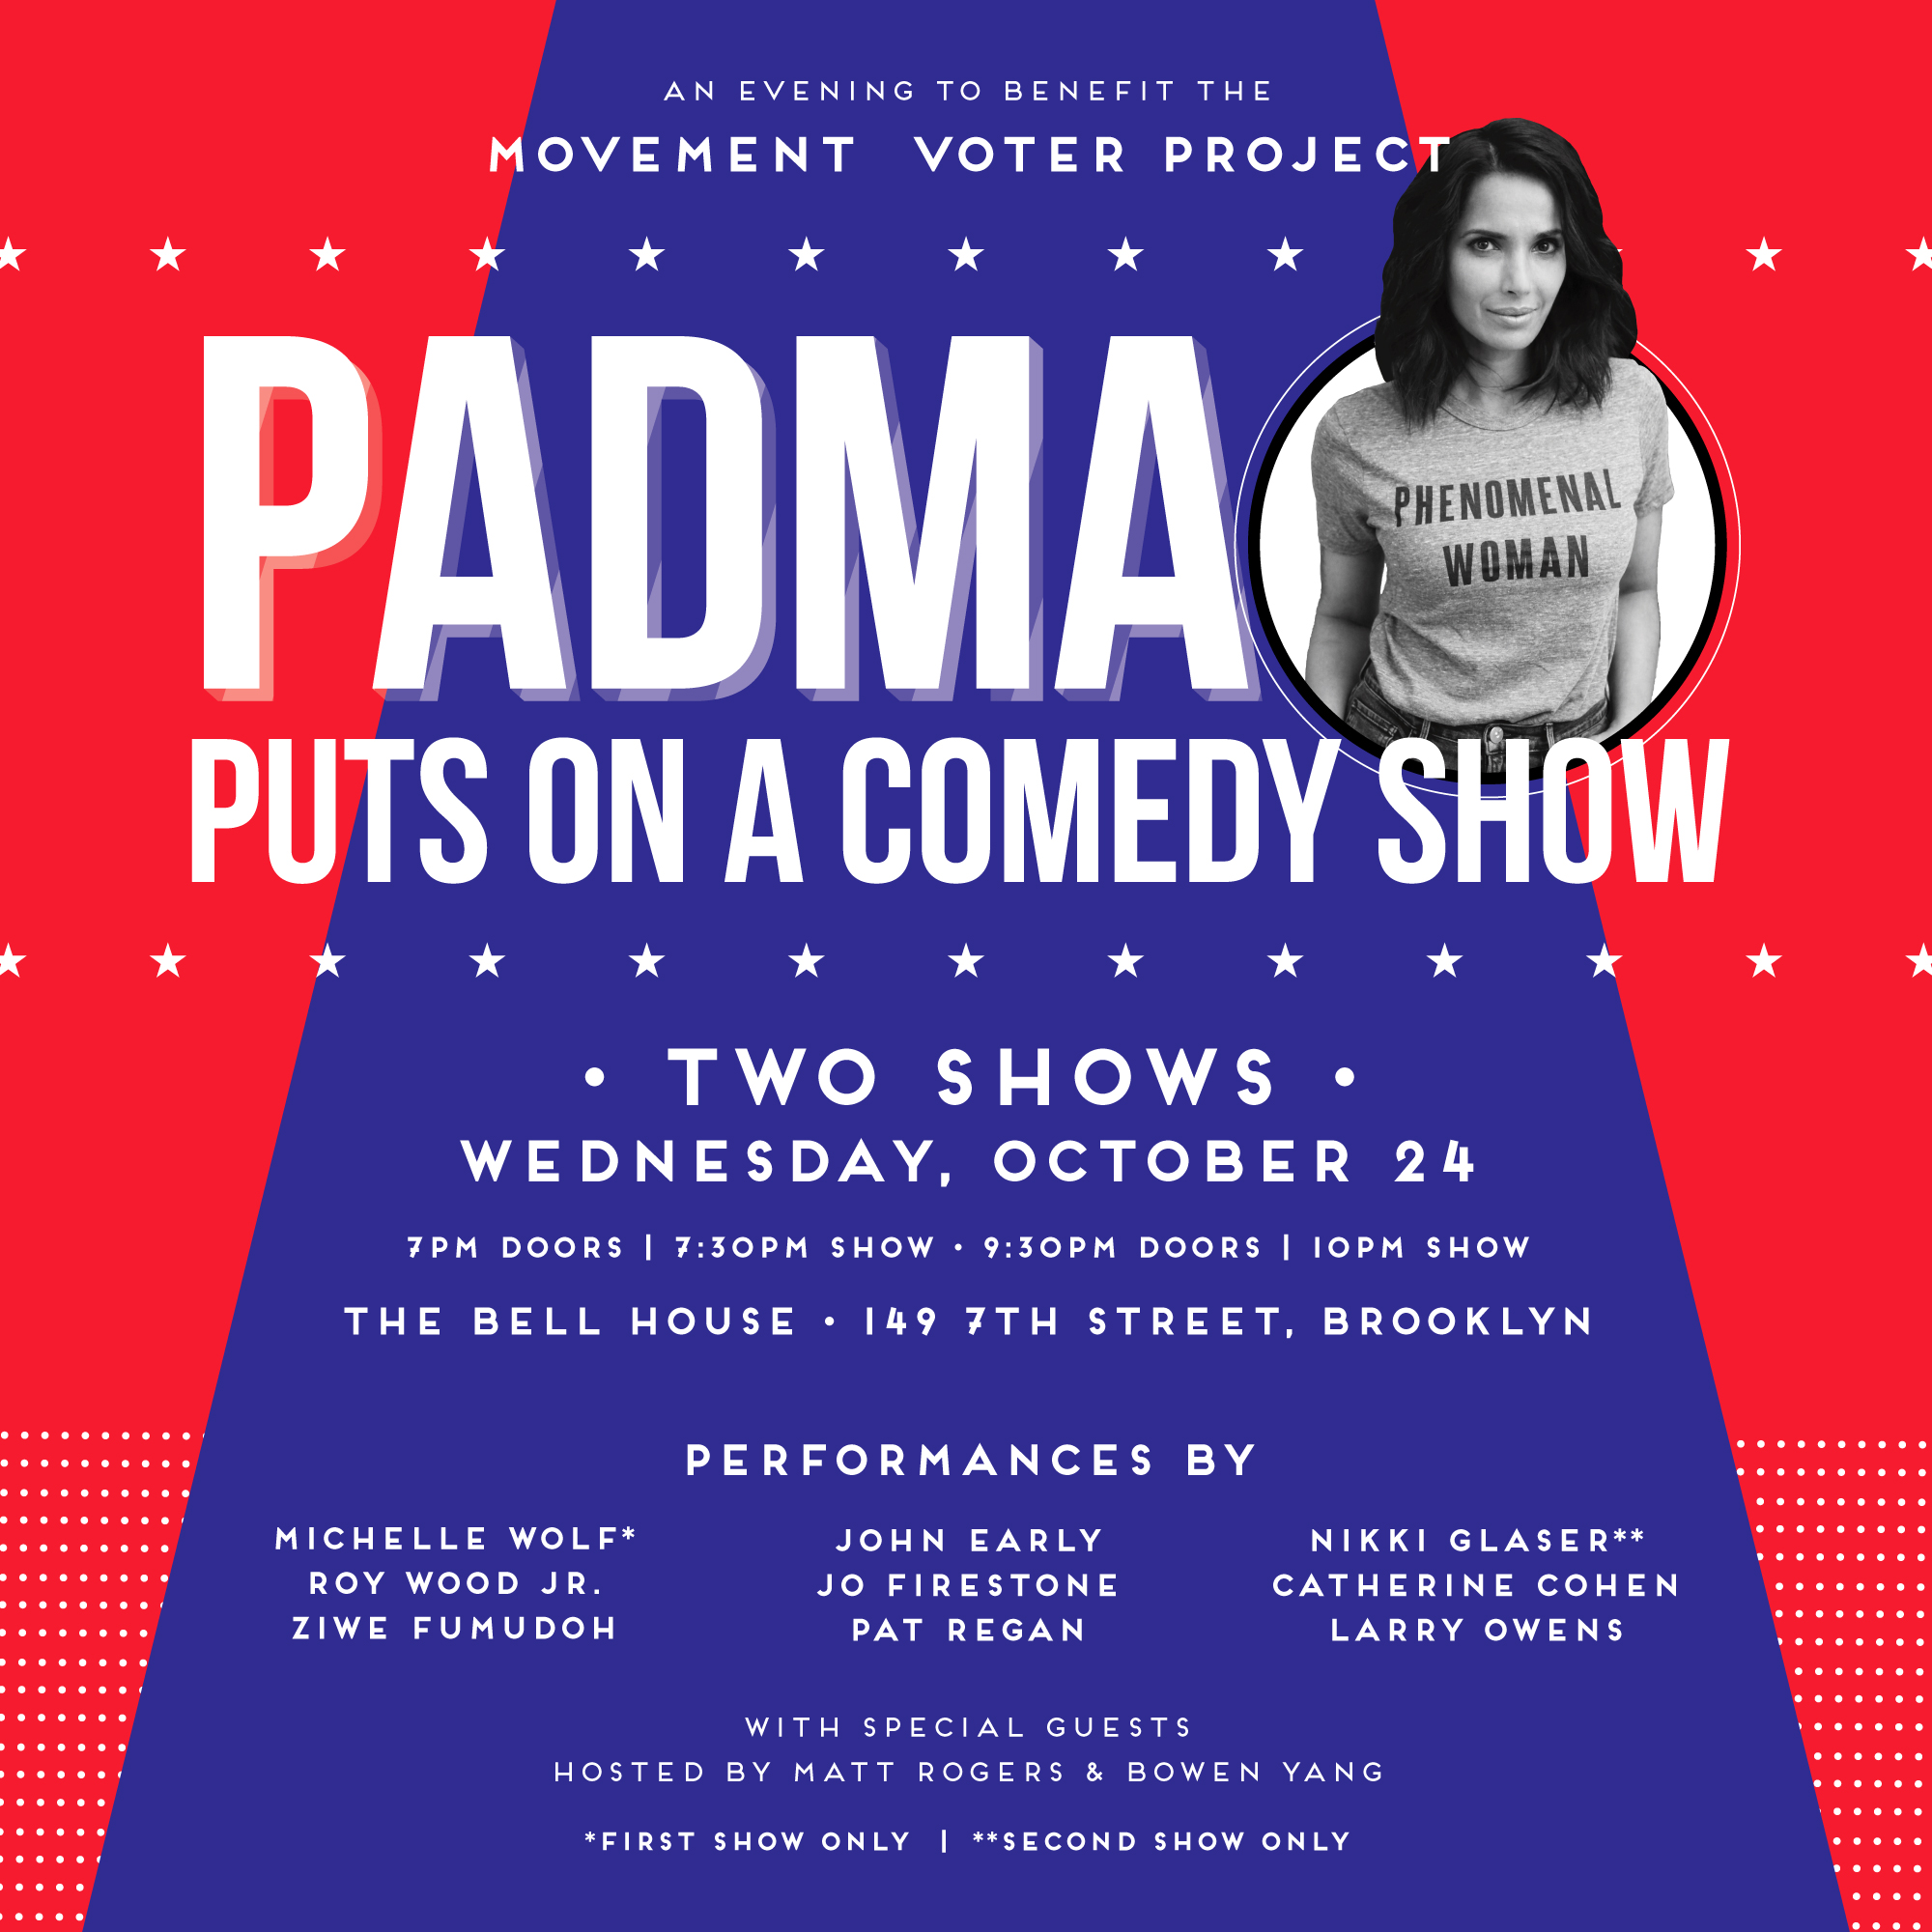 Padma-Puts-On-A-Comedy-Show_1080x1080.jpg